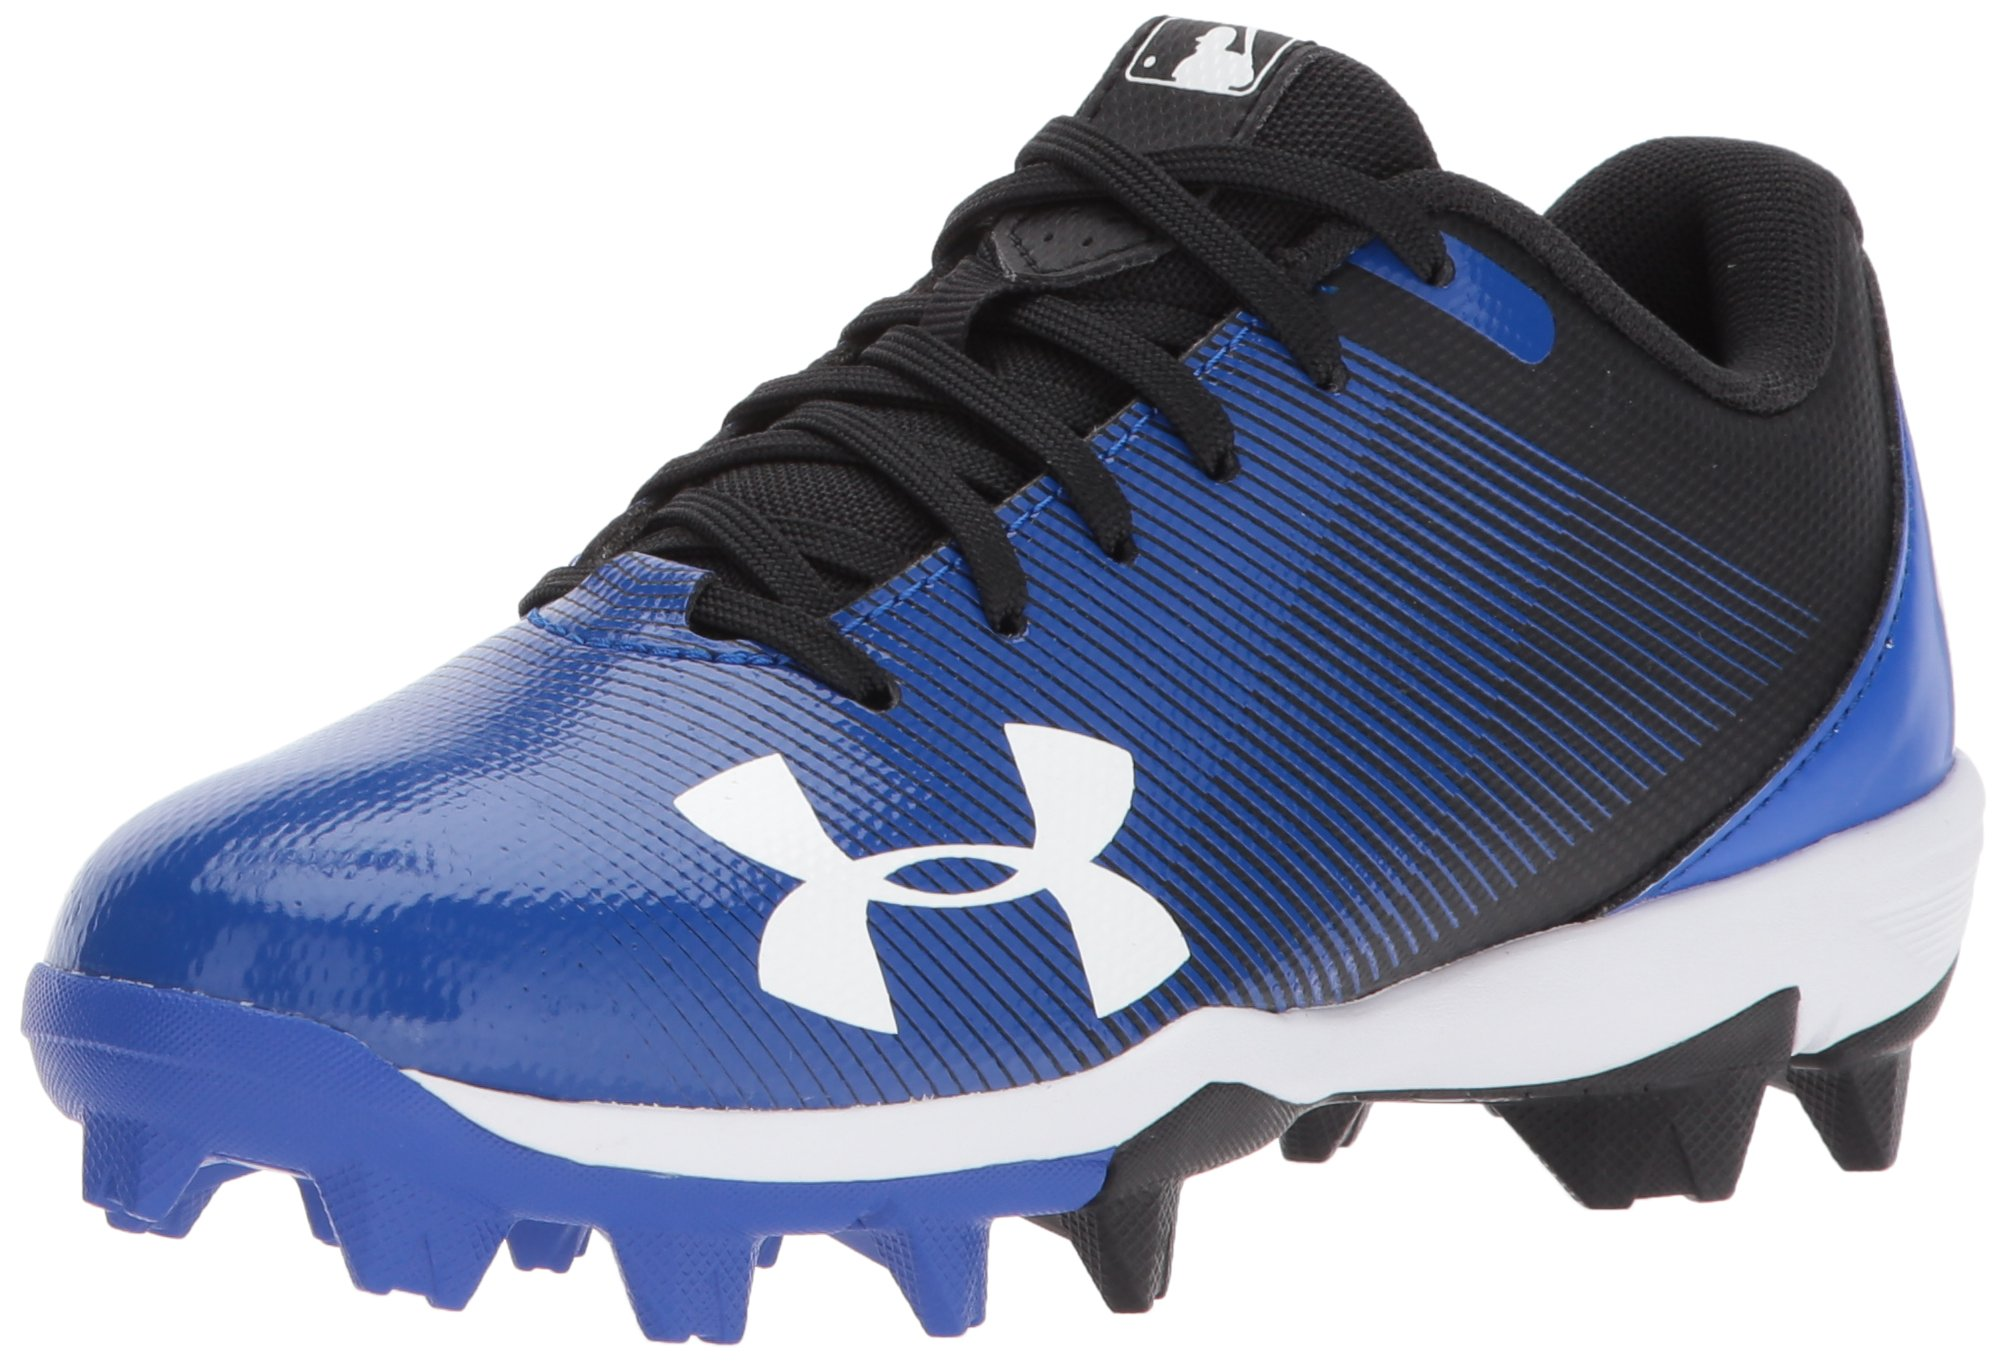 Under Armour Boys Leadoff Low Jr. RM Baseball Shoe, Black (041)/Team Royal, Toddler 8K US by Under Armour